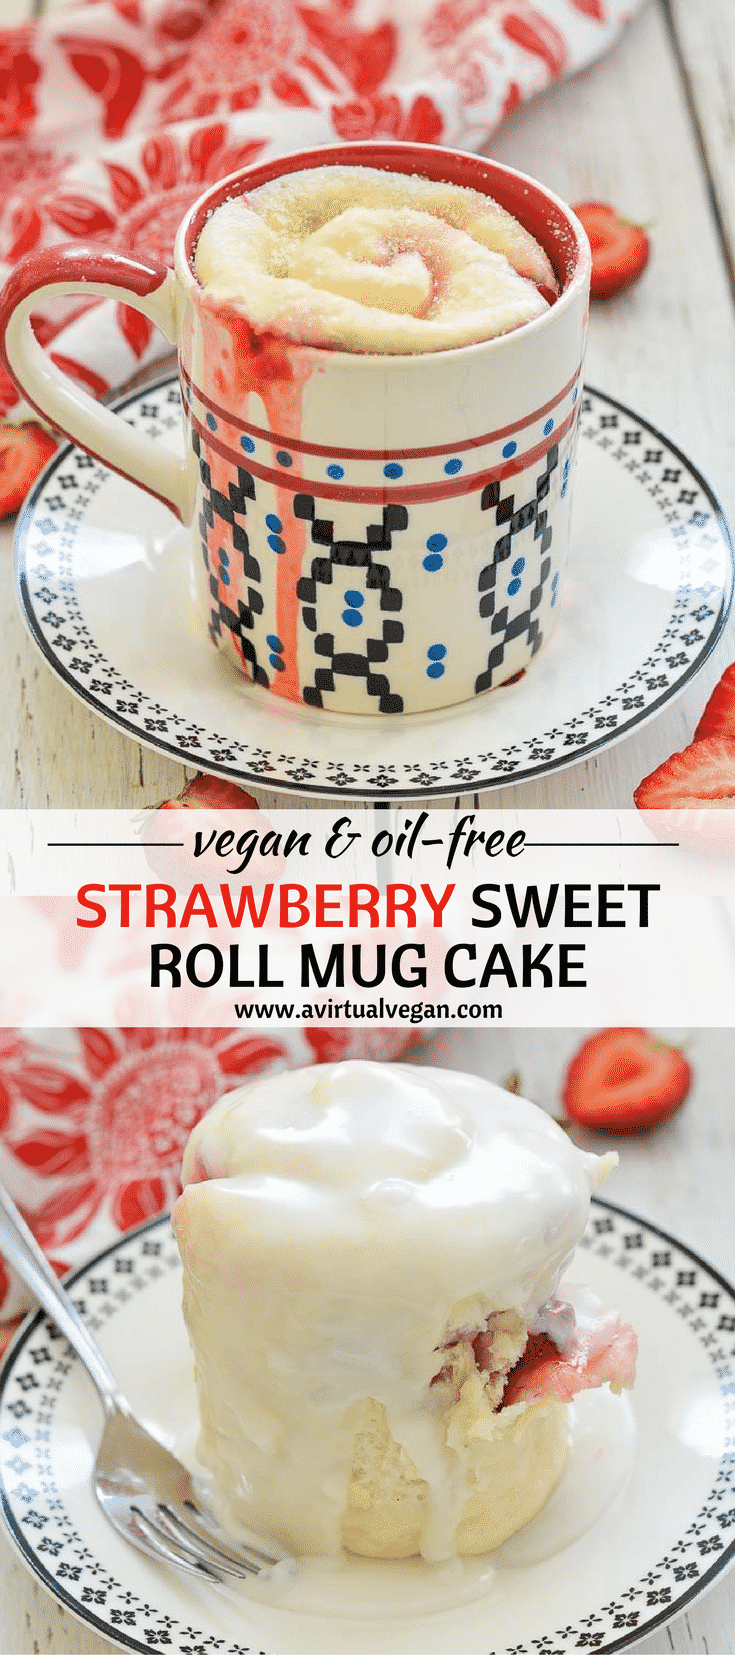 What's big, soft, squidgy, stuffed with sweet, juicy strawberries, drizzled in free flowing, thick, sweet frosting & ready in minutes??  Ummmm....this Strawberry Sweet Roll Mug Cake of course!